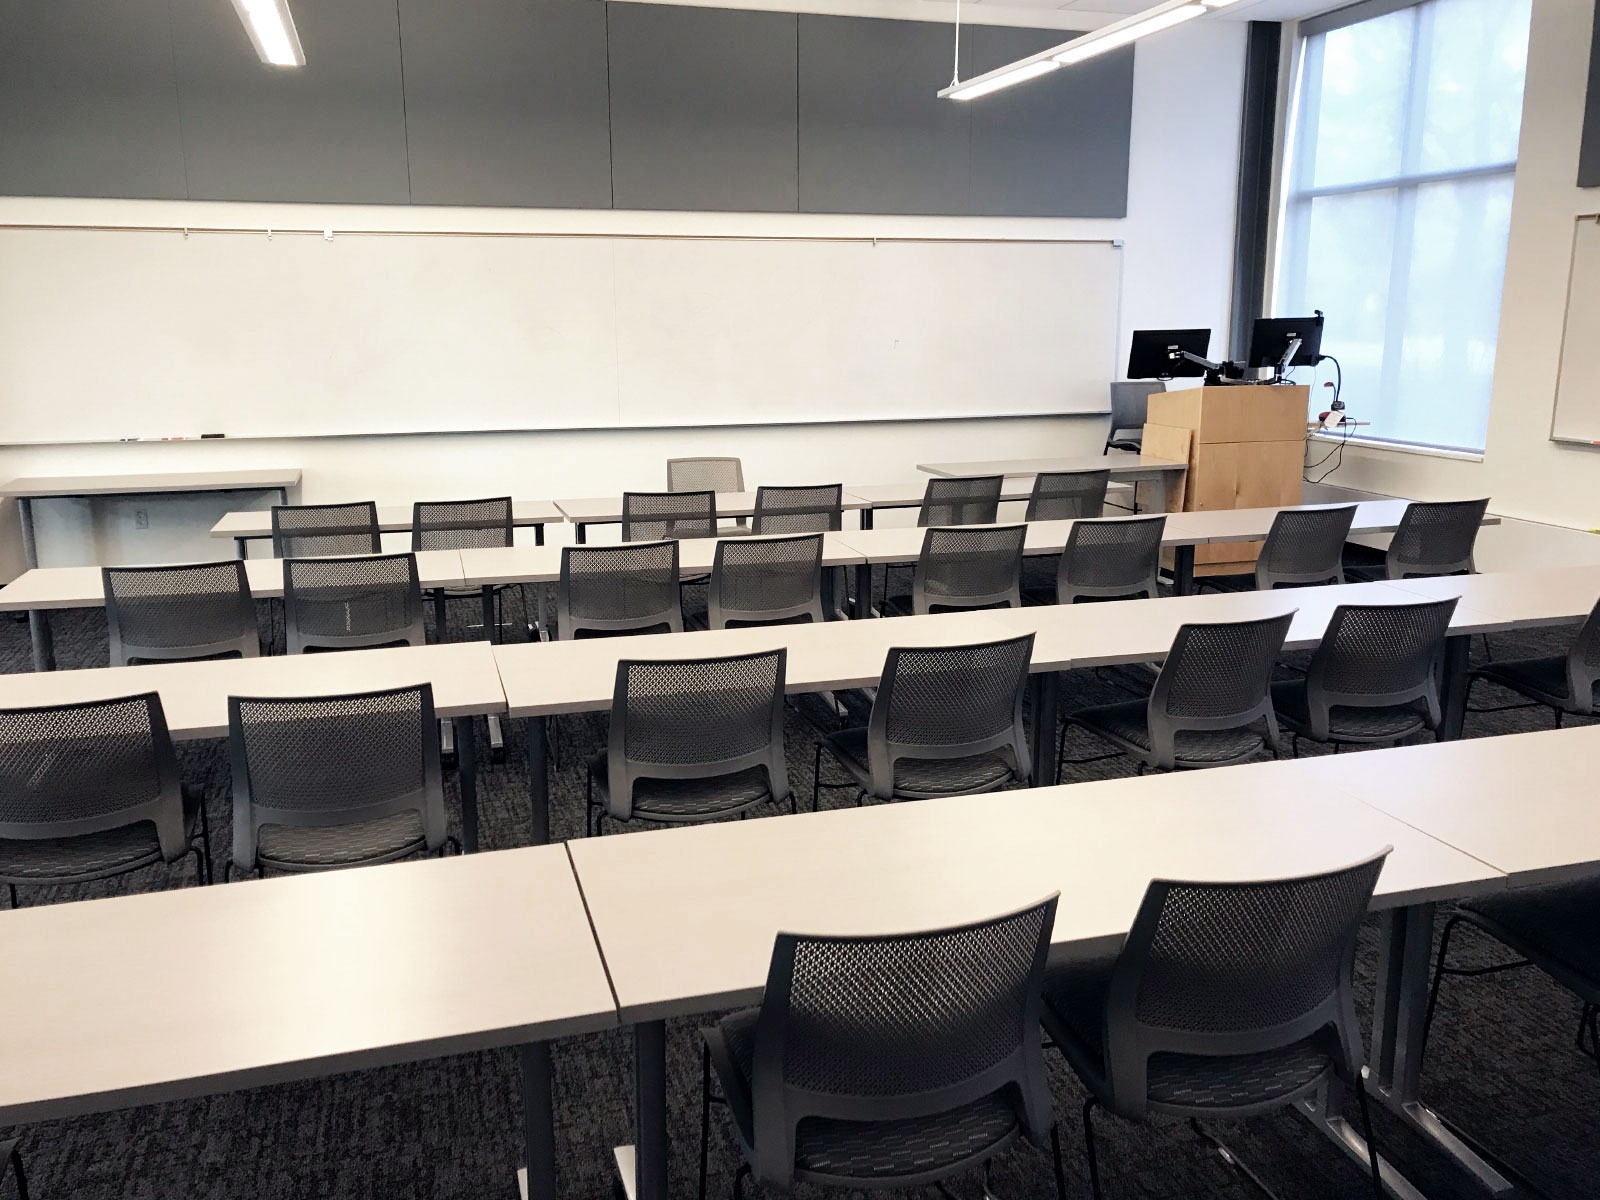 Rows of chairs and tables with a podium in front of a whiteboard in Harmony Campus classroom